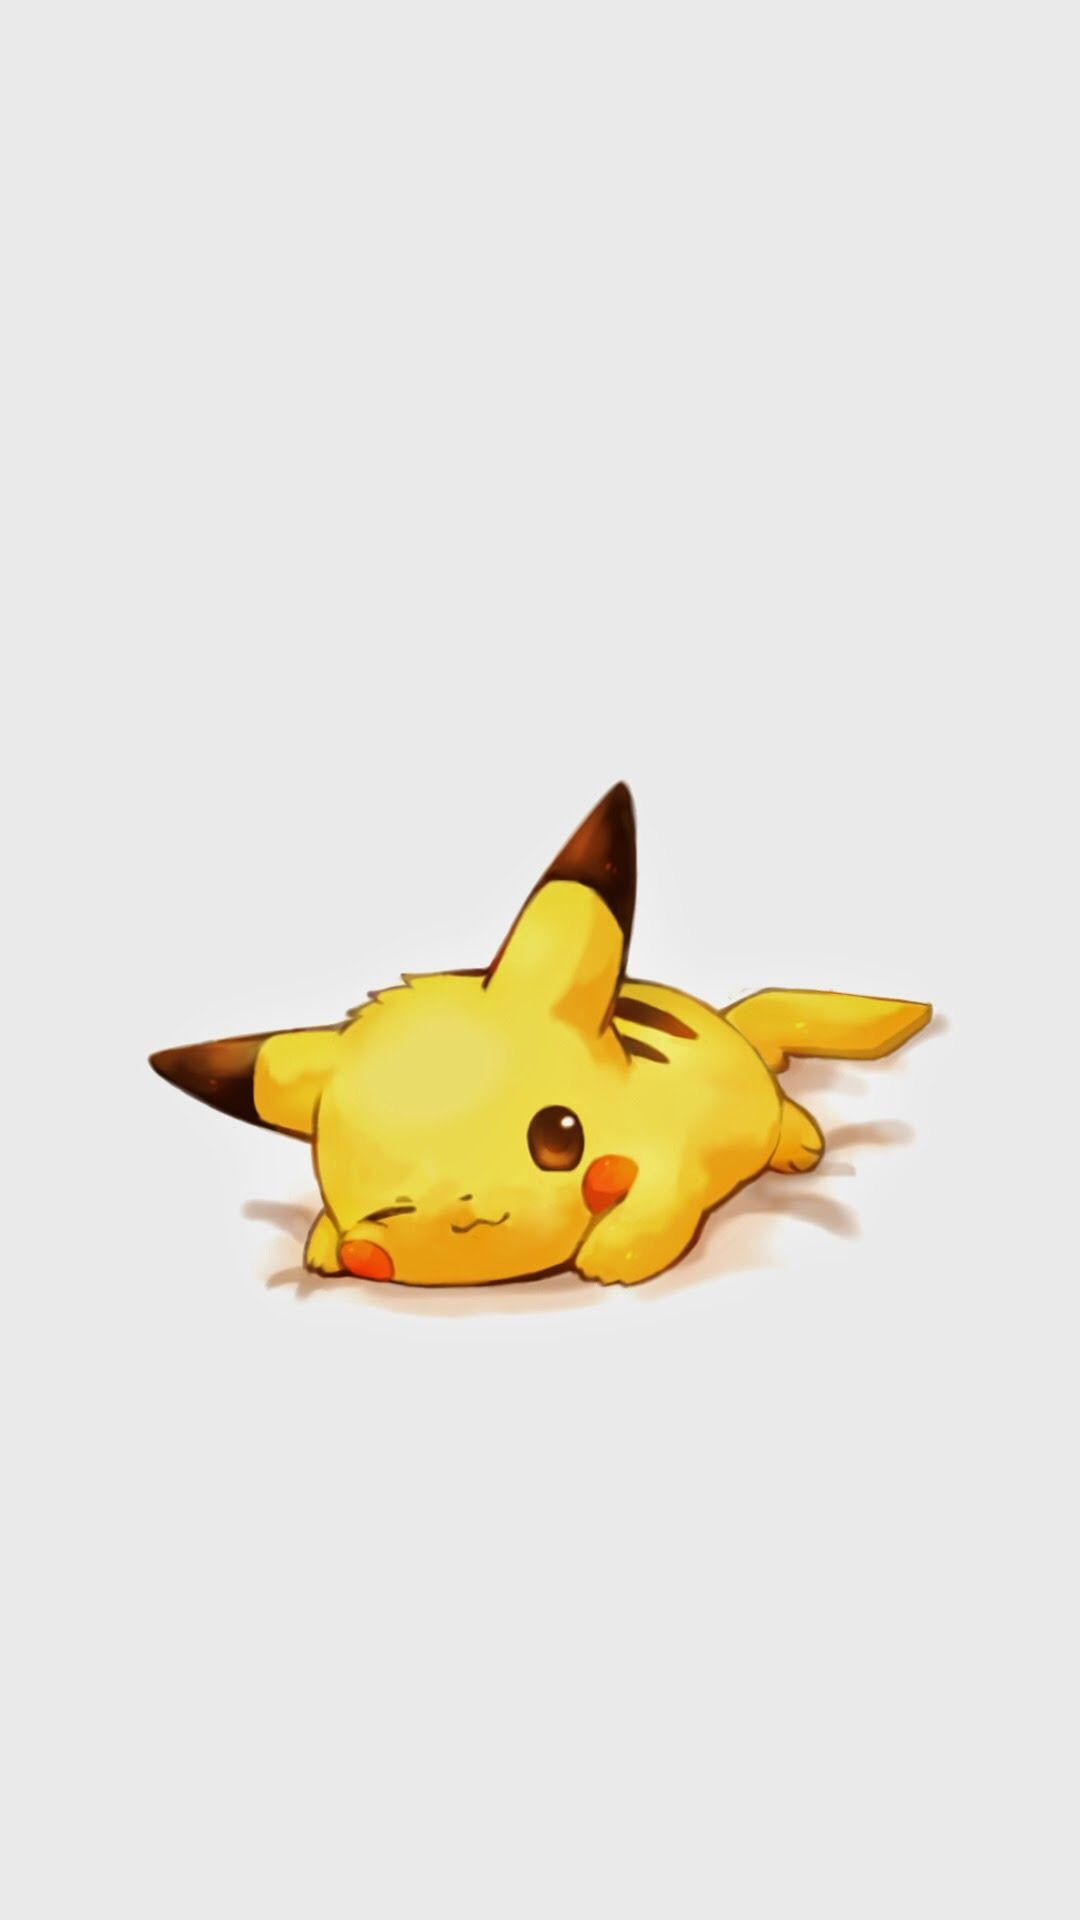 1080x1920 Tap image for more funny cute Pikachu wallpaper! Pikachu - @mobile9 |  Wallpapers for iPhone 5/5s/5c, iPhone 6 & 6 plus #pokemon #anime